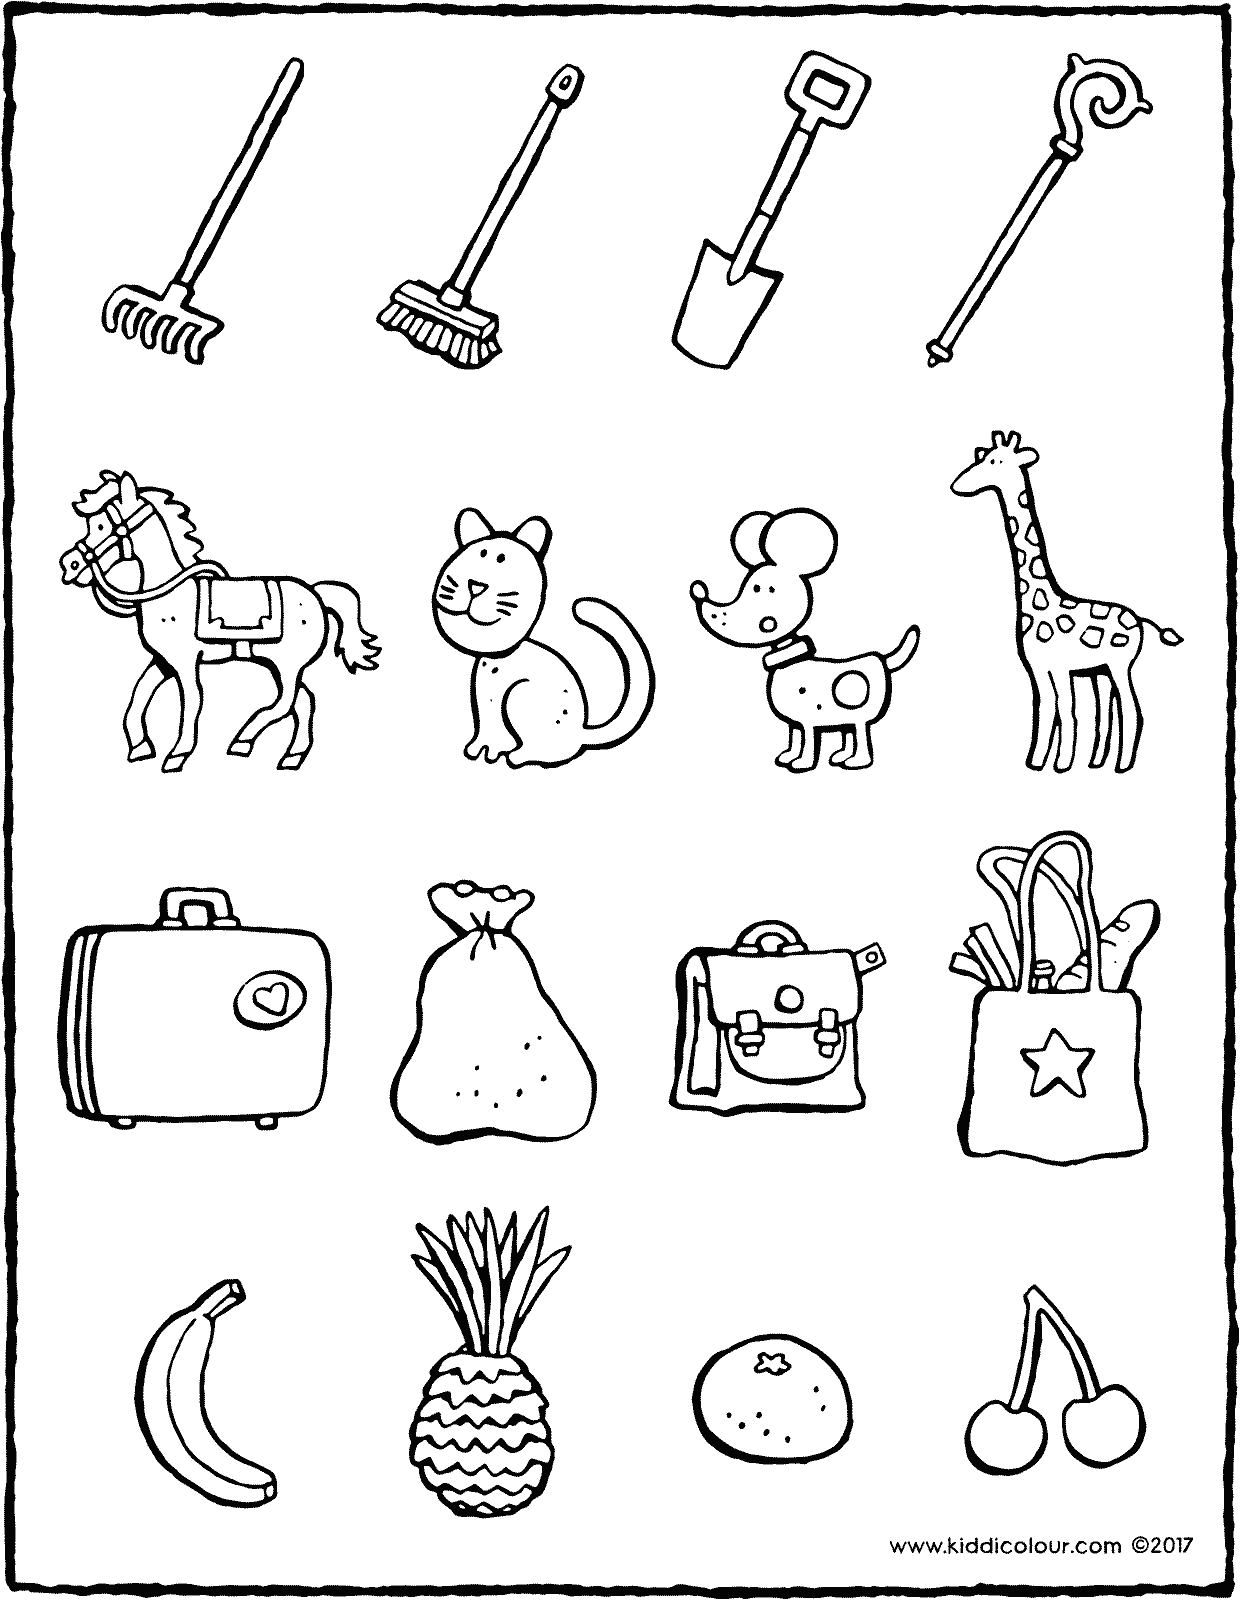 colour in the object that belongs to Saint Nicholas colouring page drawing picture 01V